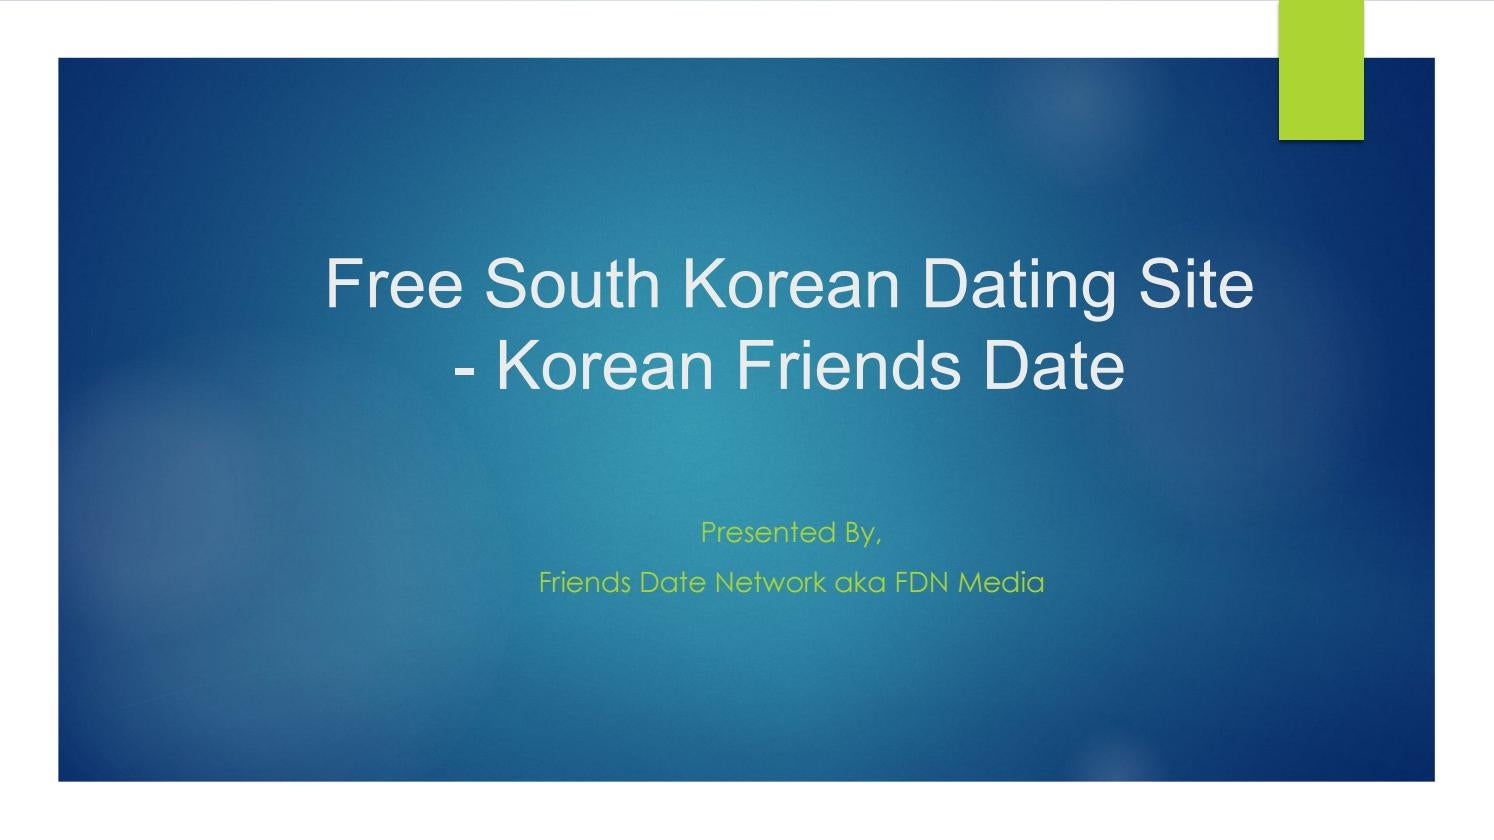 Korean dating site for free